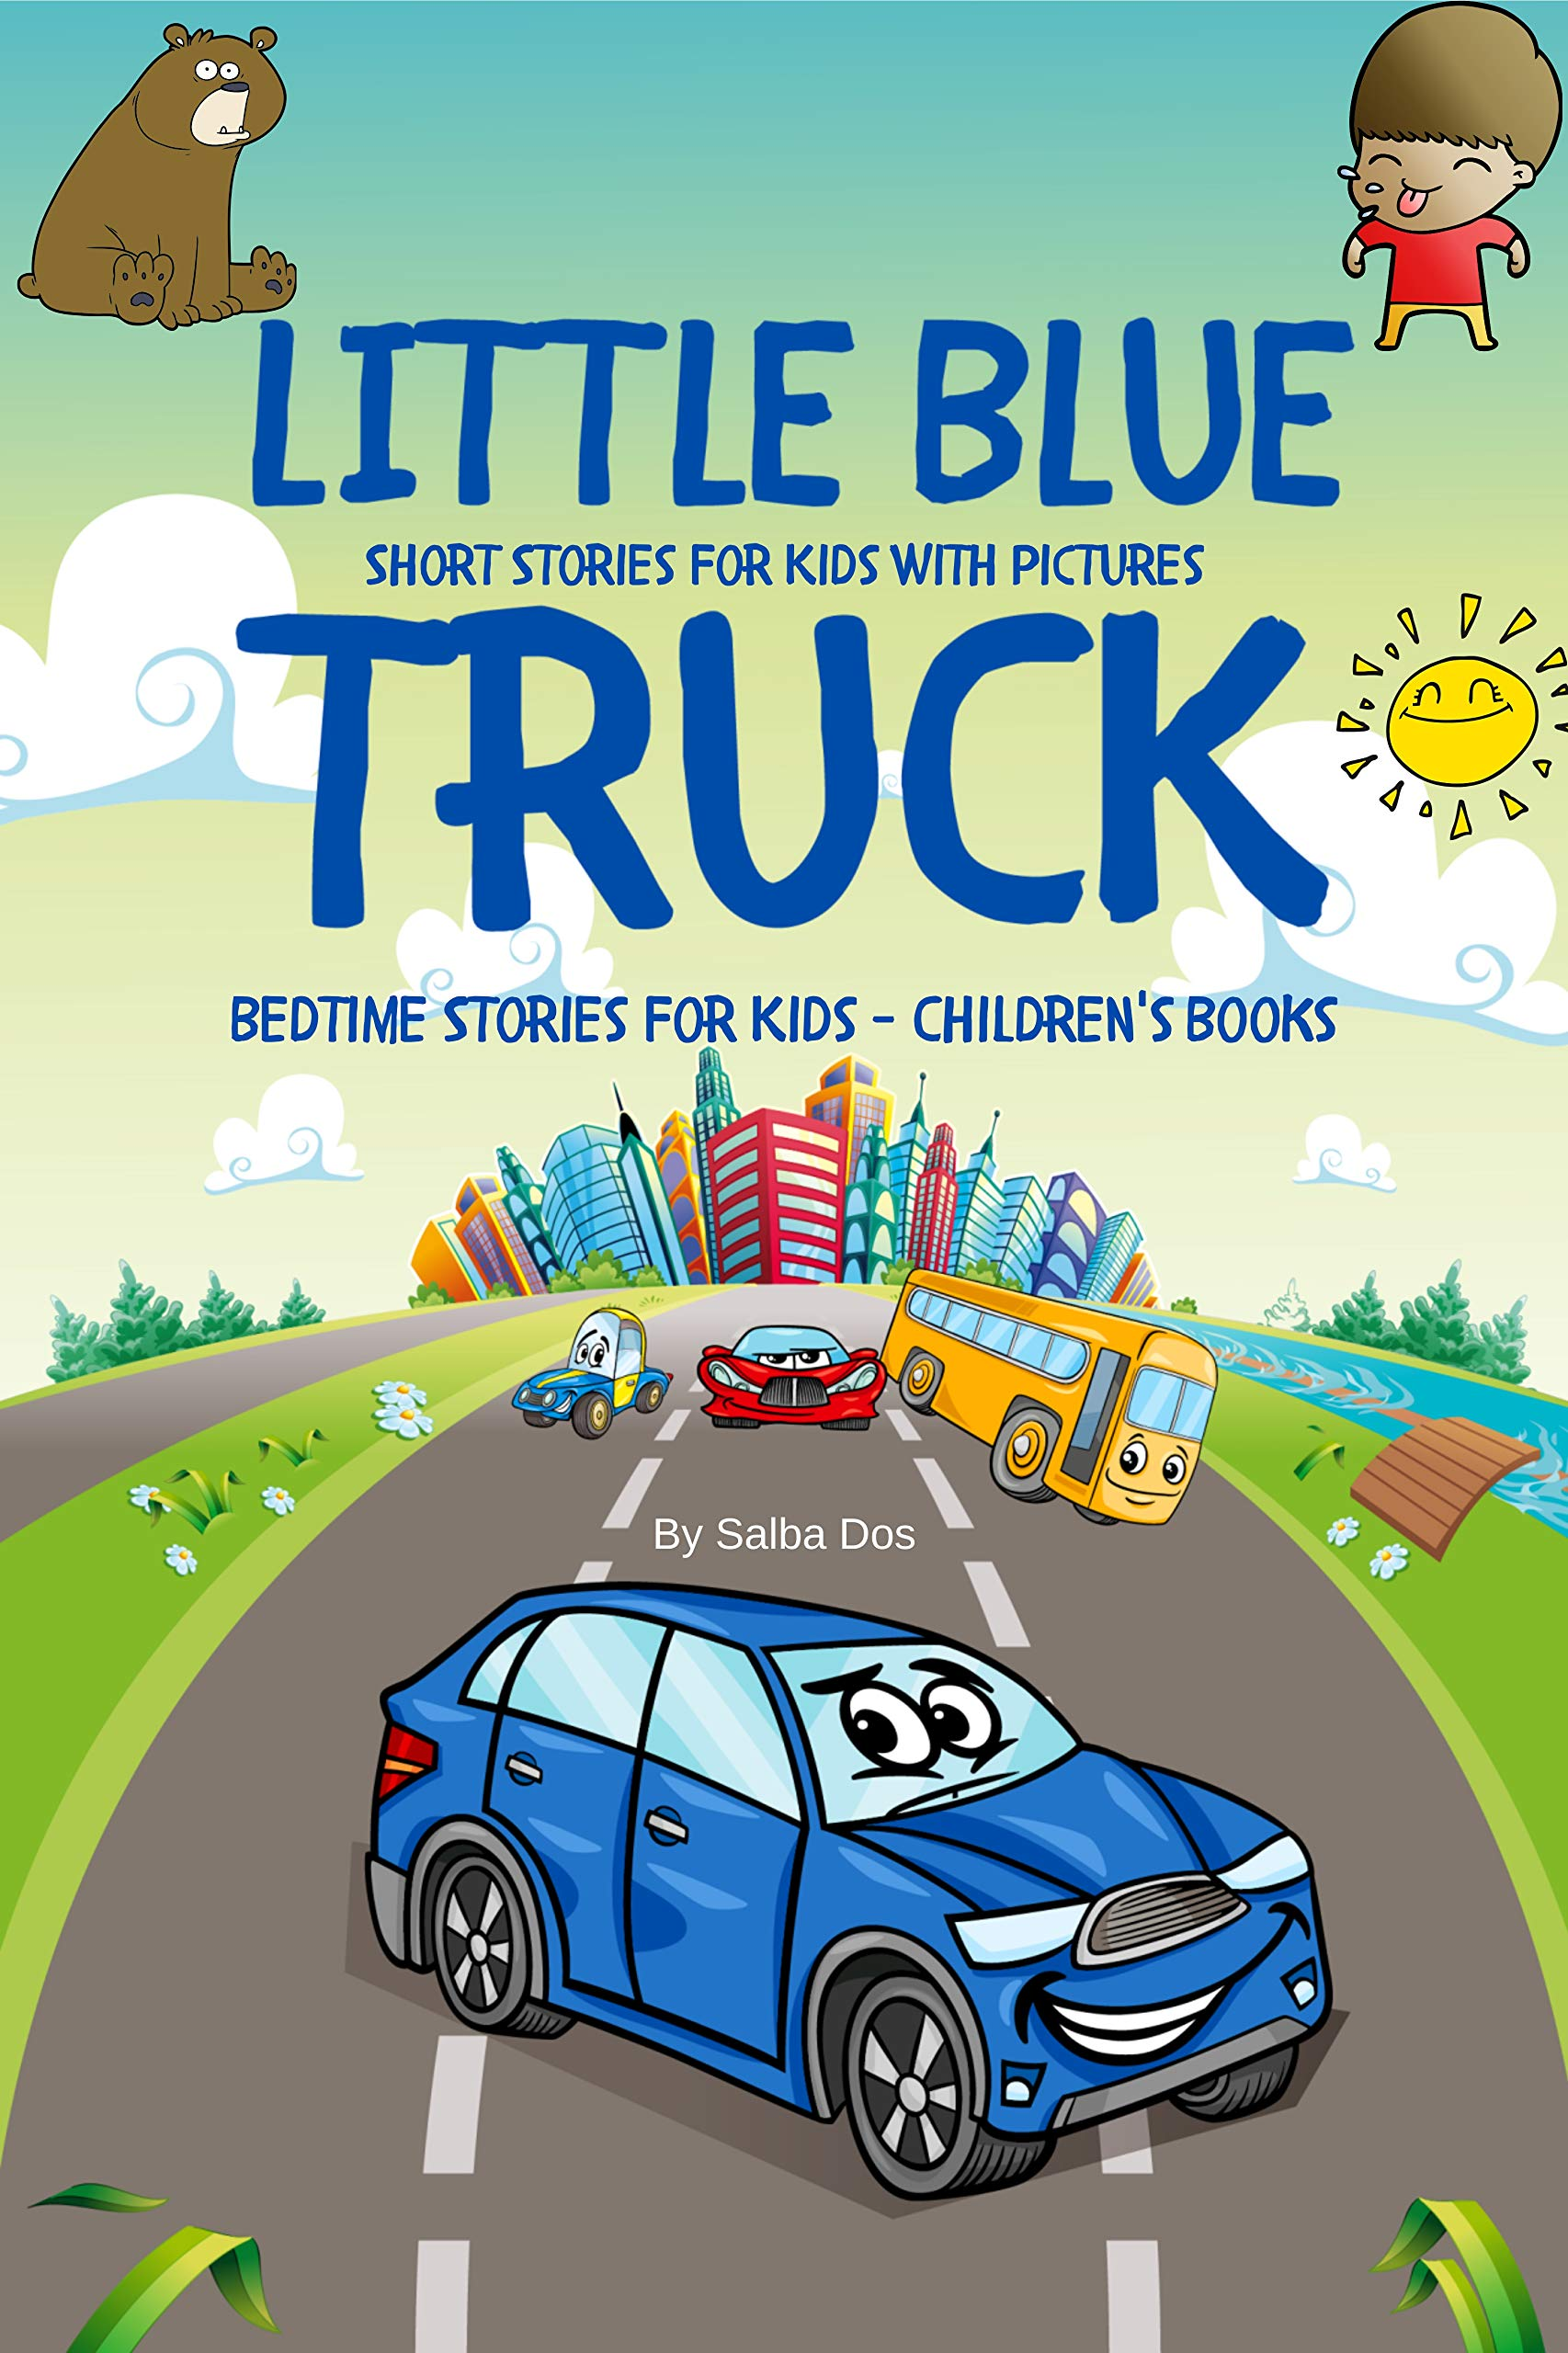 Little Blue Truck - Short Stories For Kids With Pictures: Bedtime Stories For Kids - Children's Books